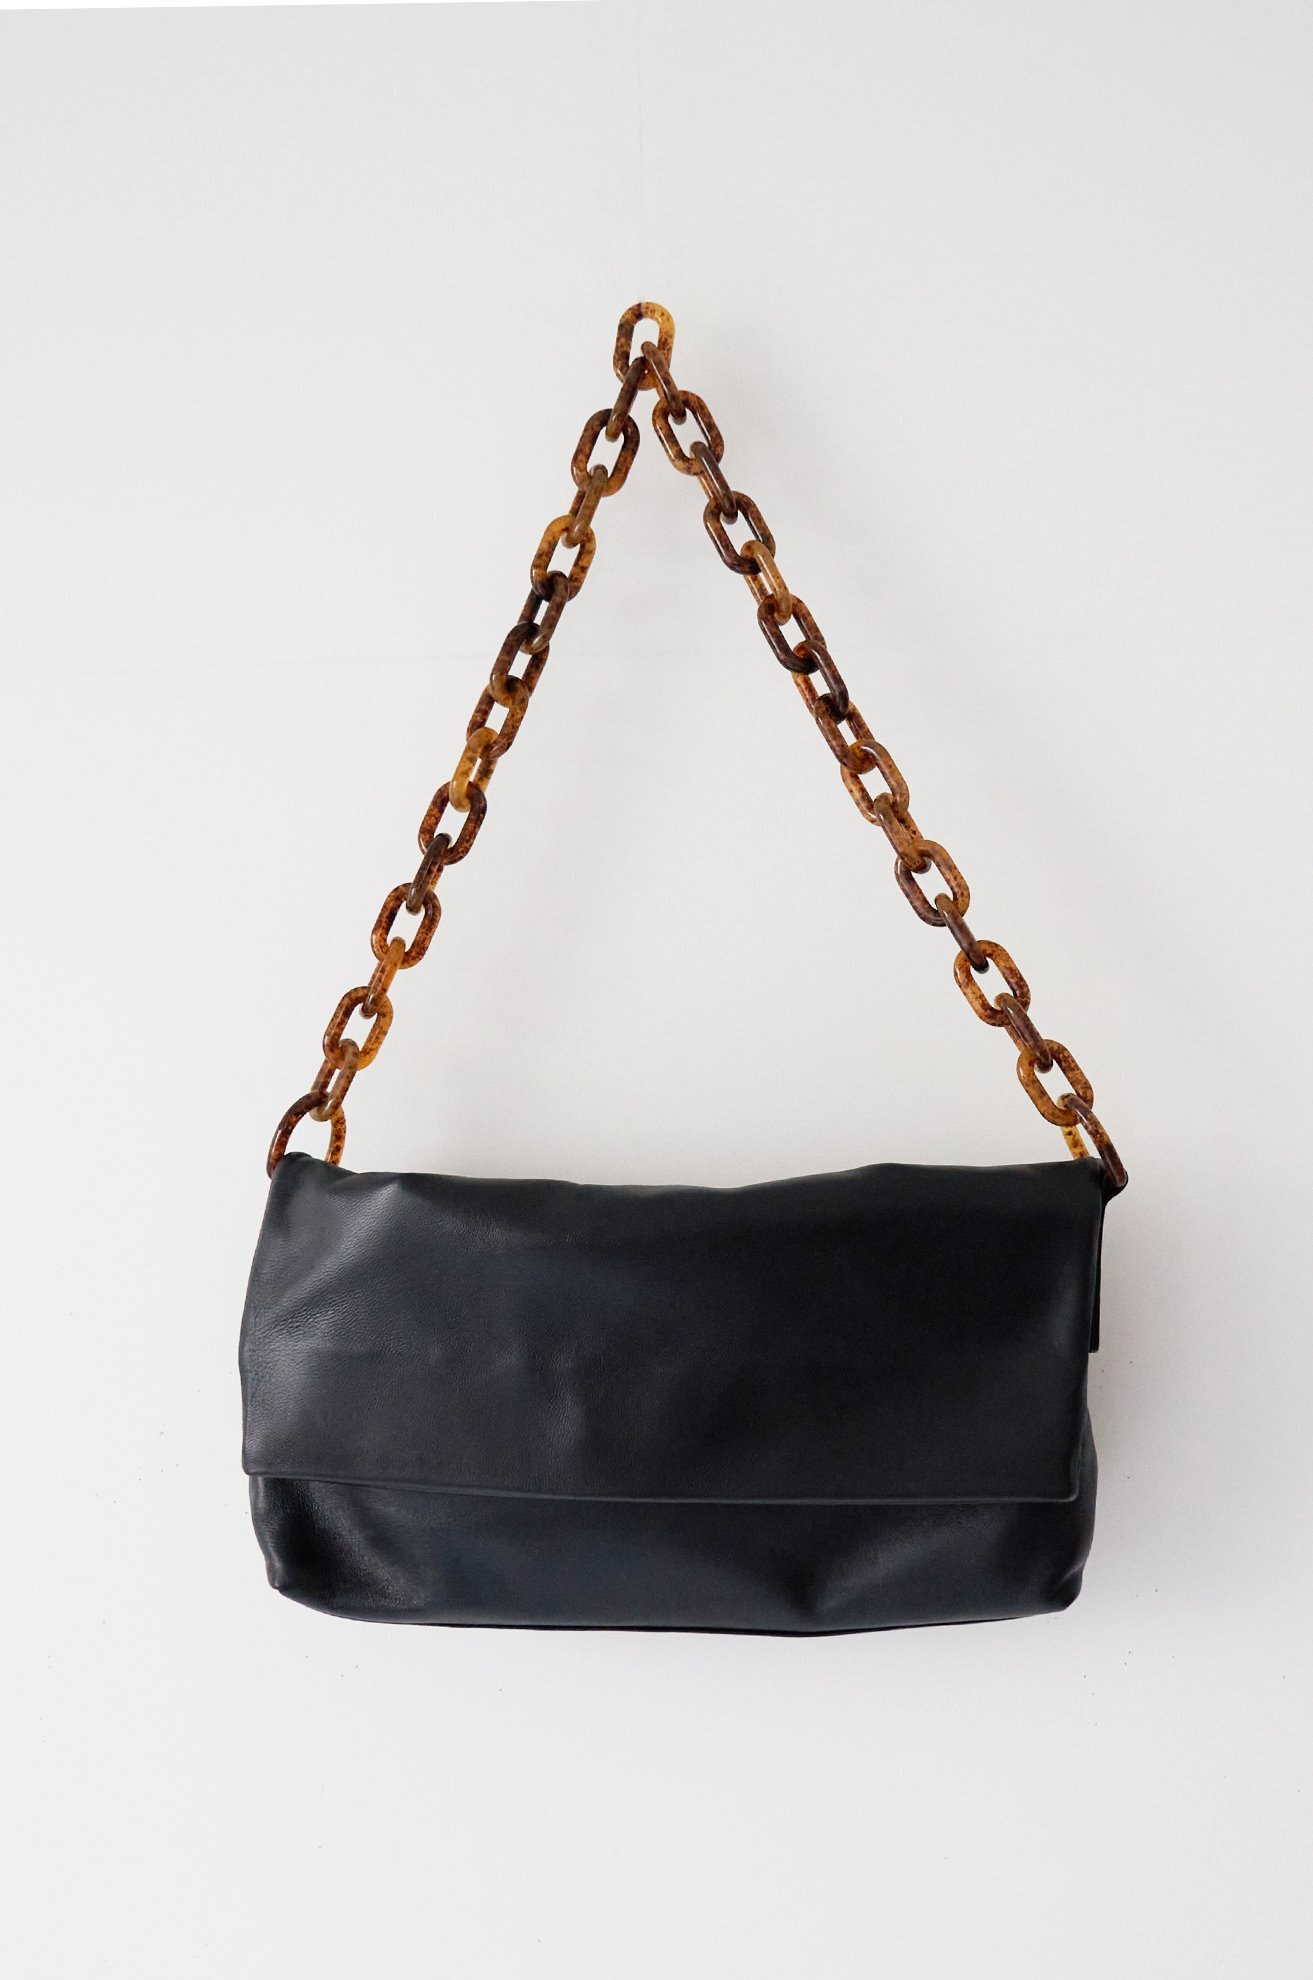 Plexiglass chain leather bag